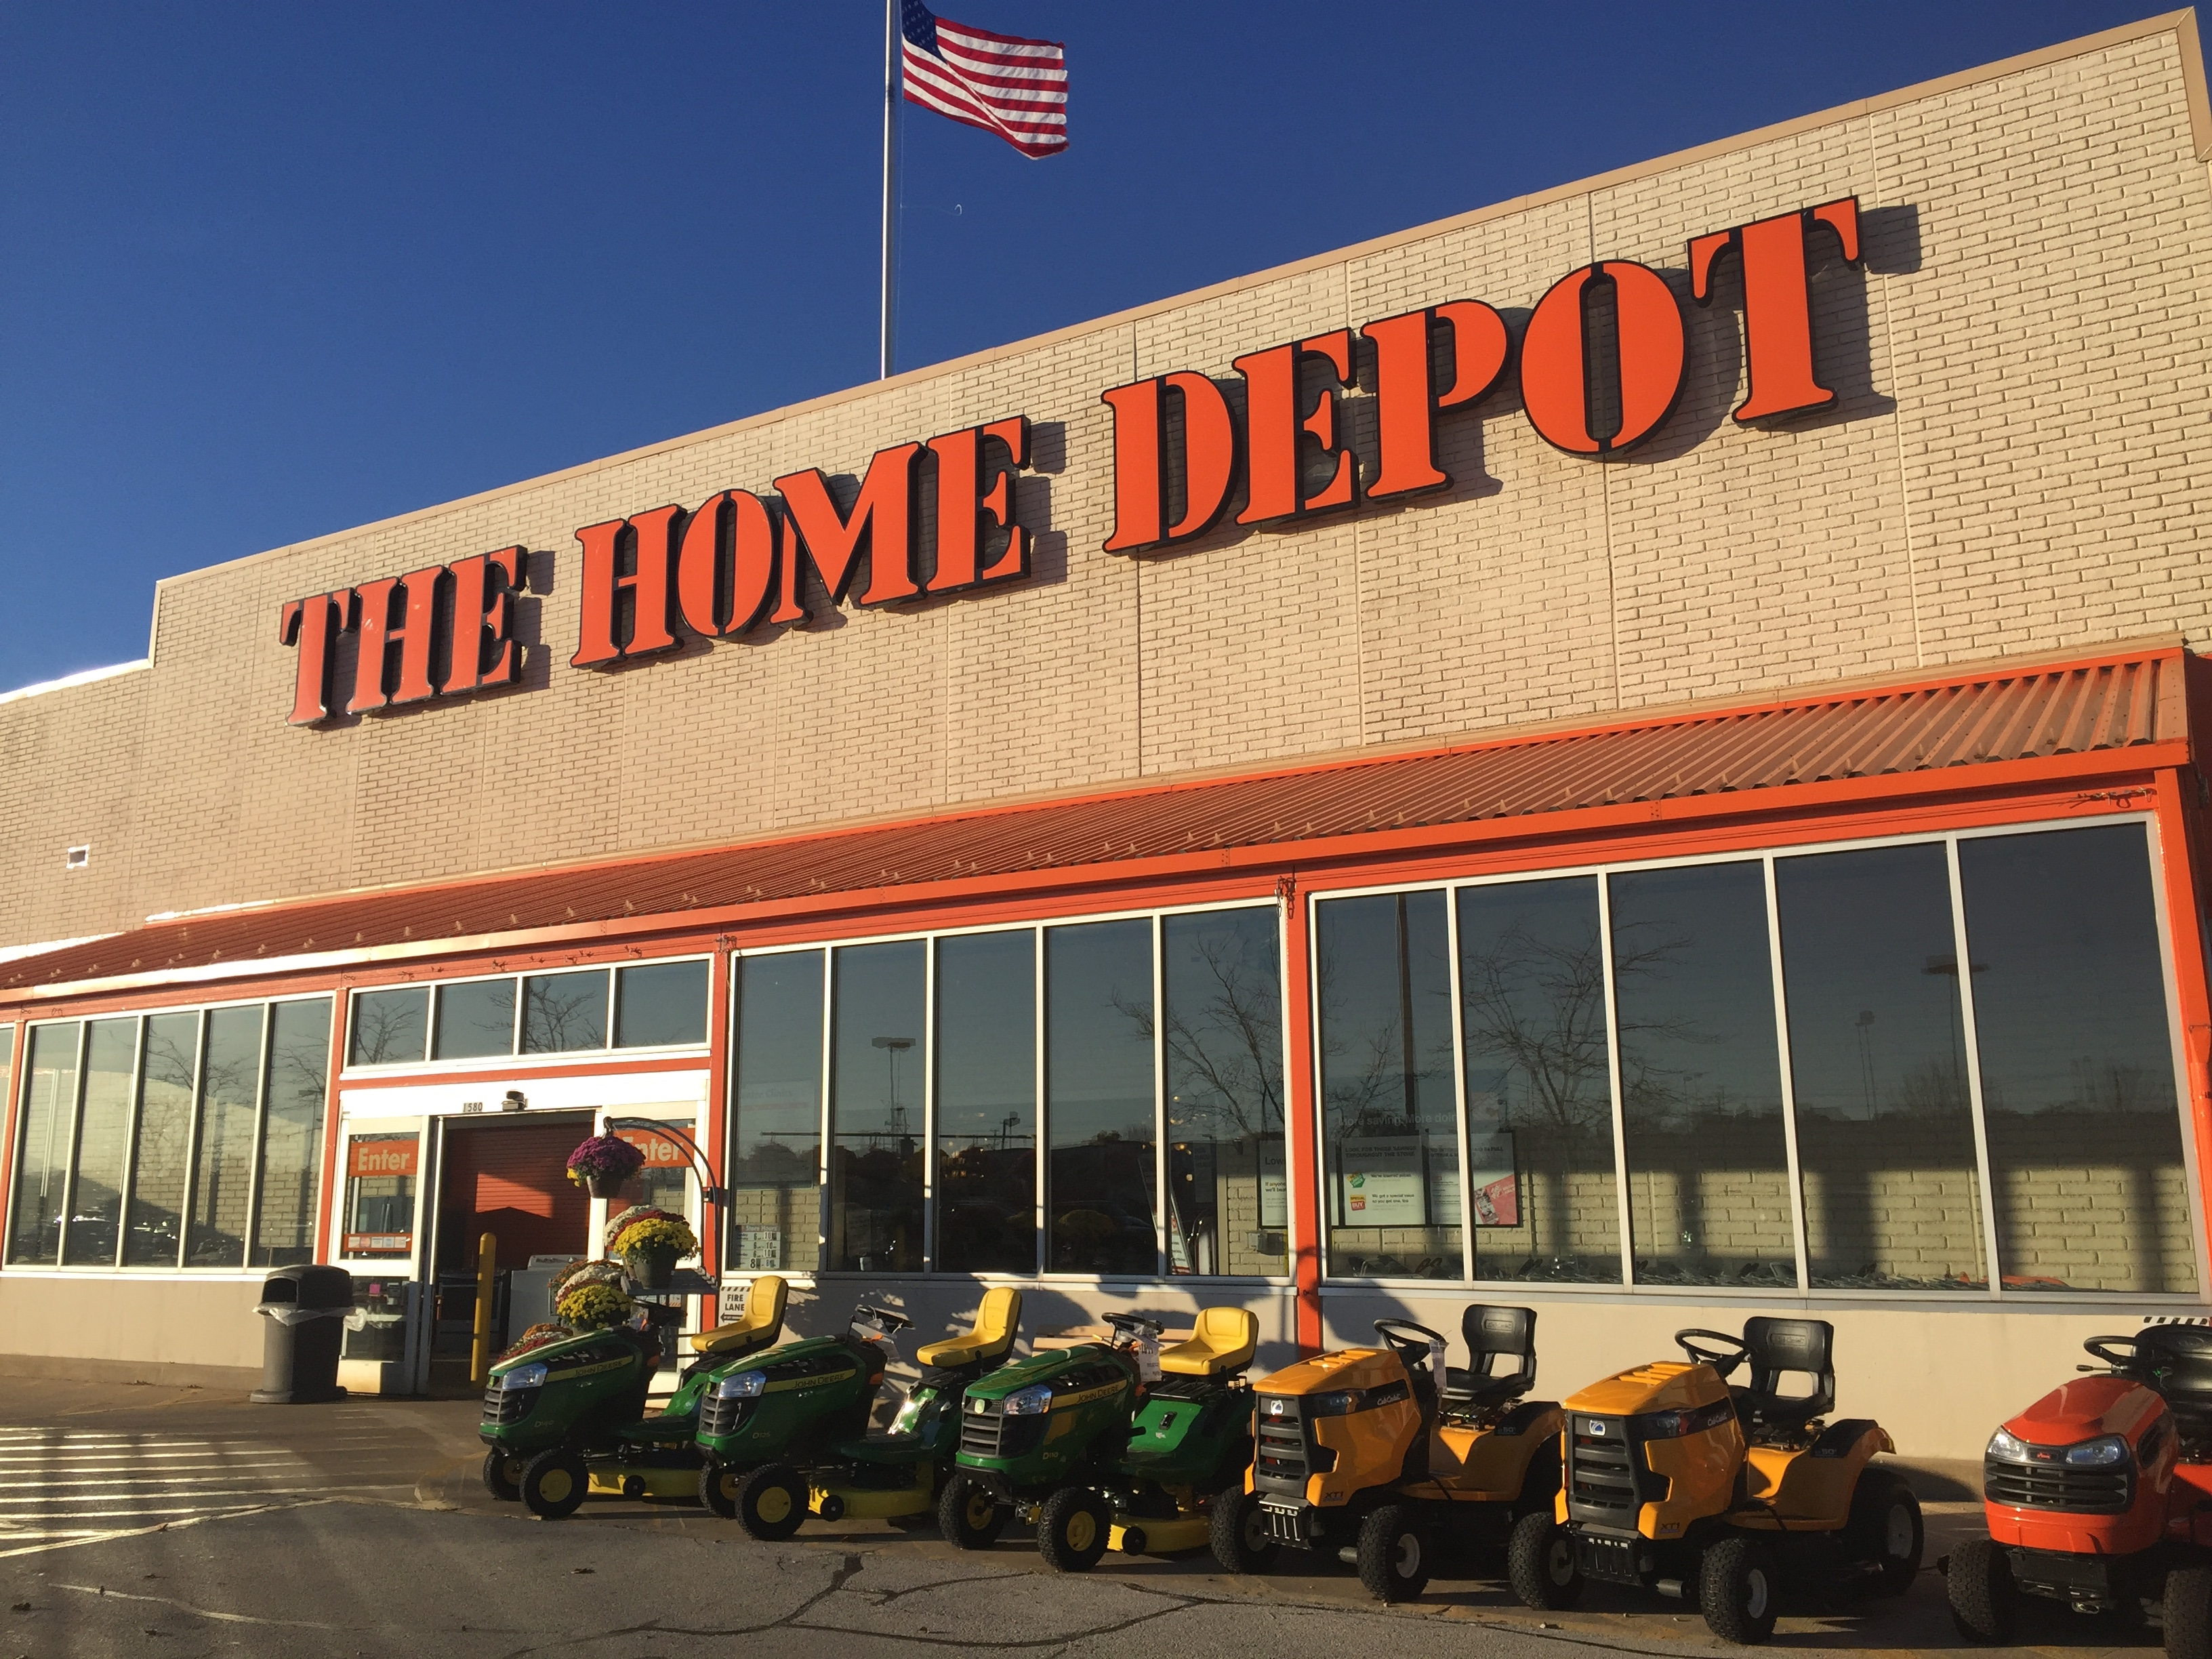 The Home Depot In Machesney Park IL